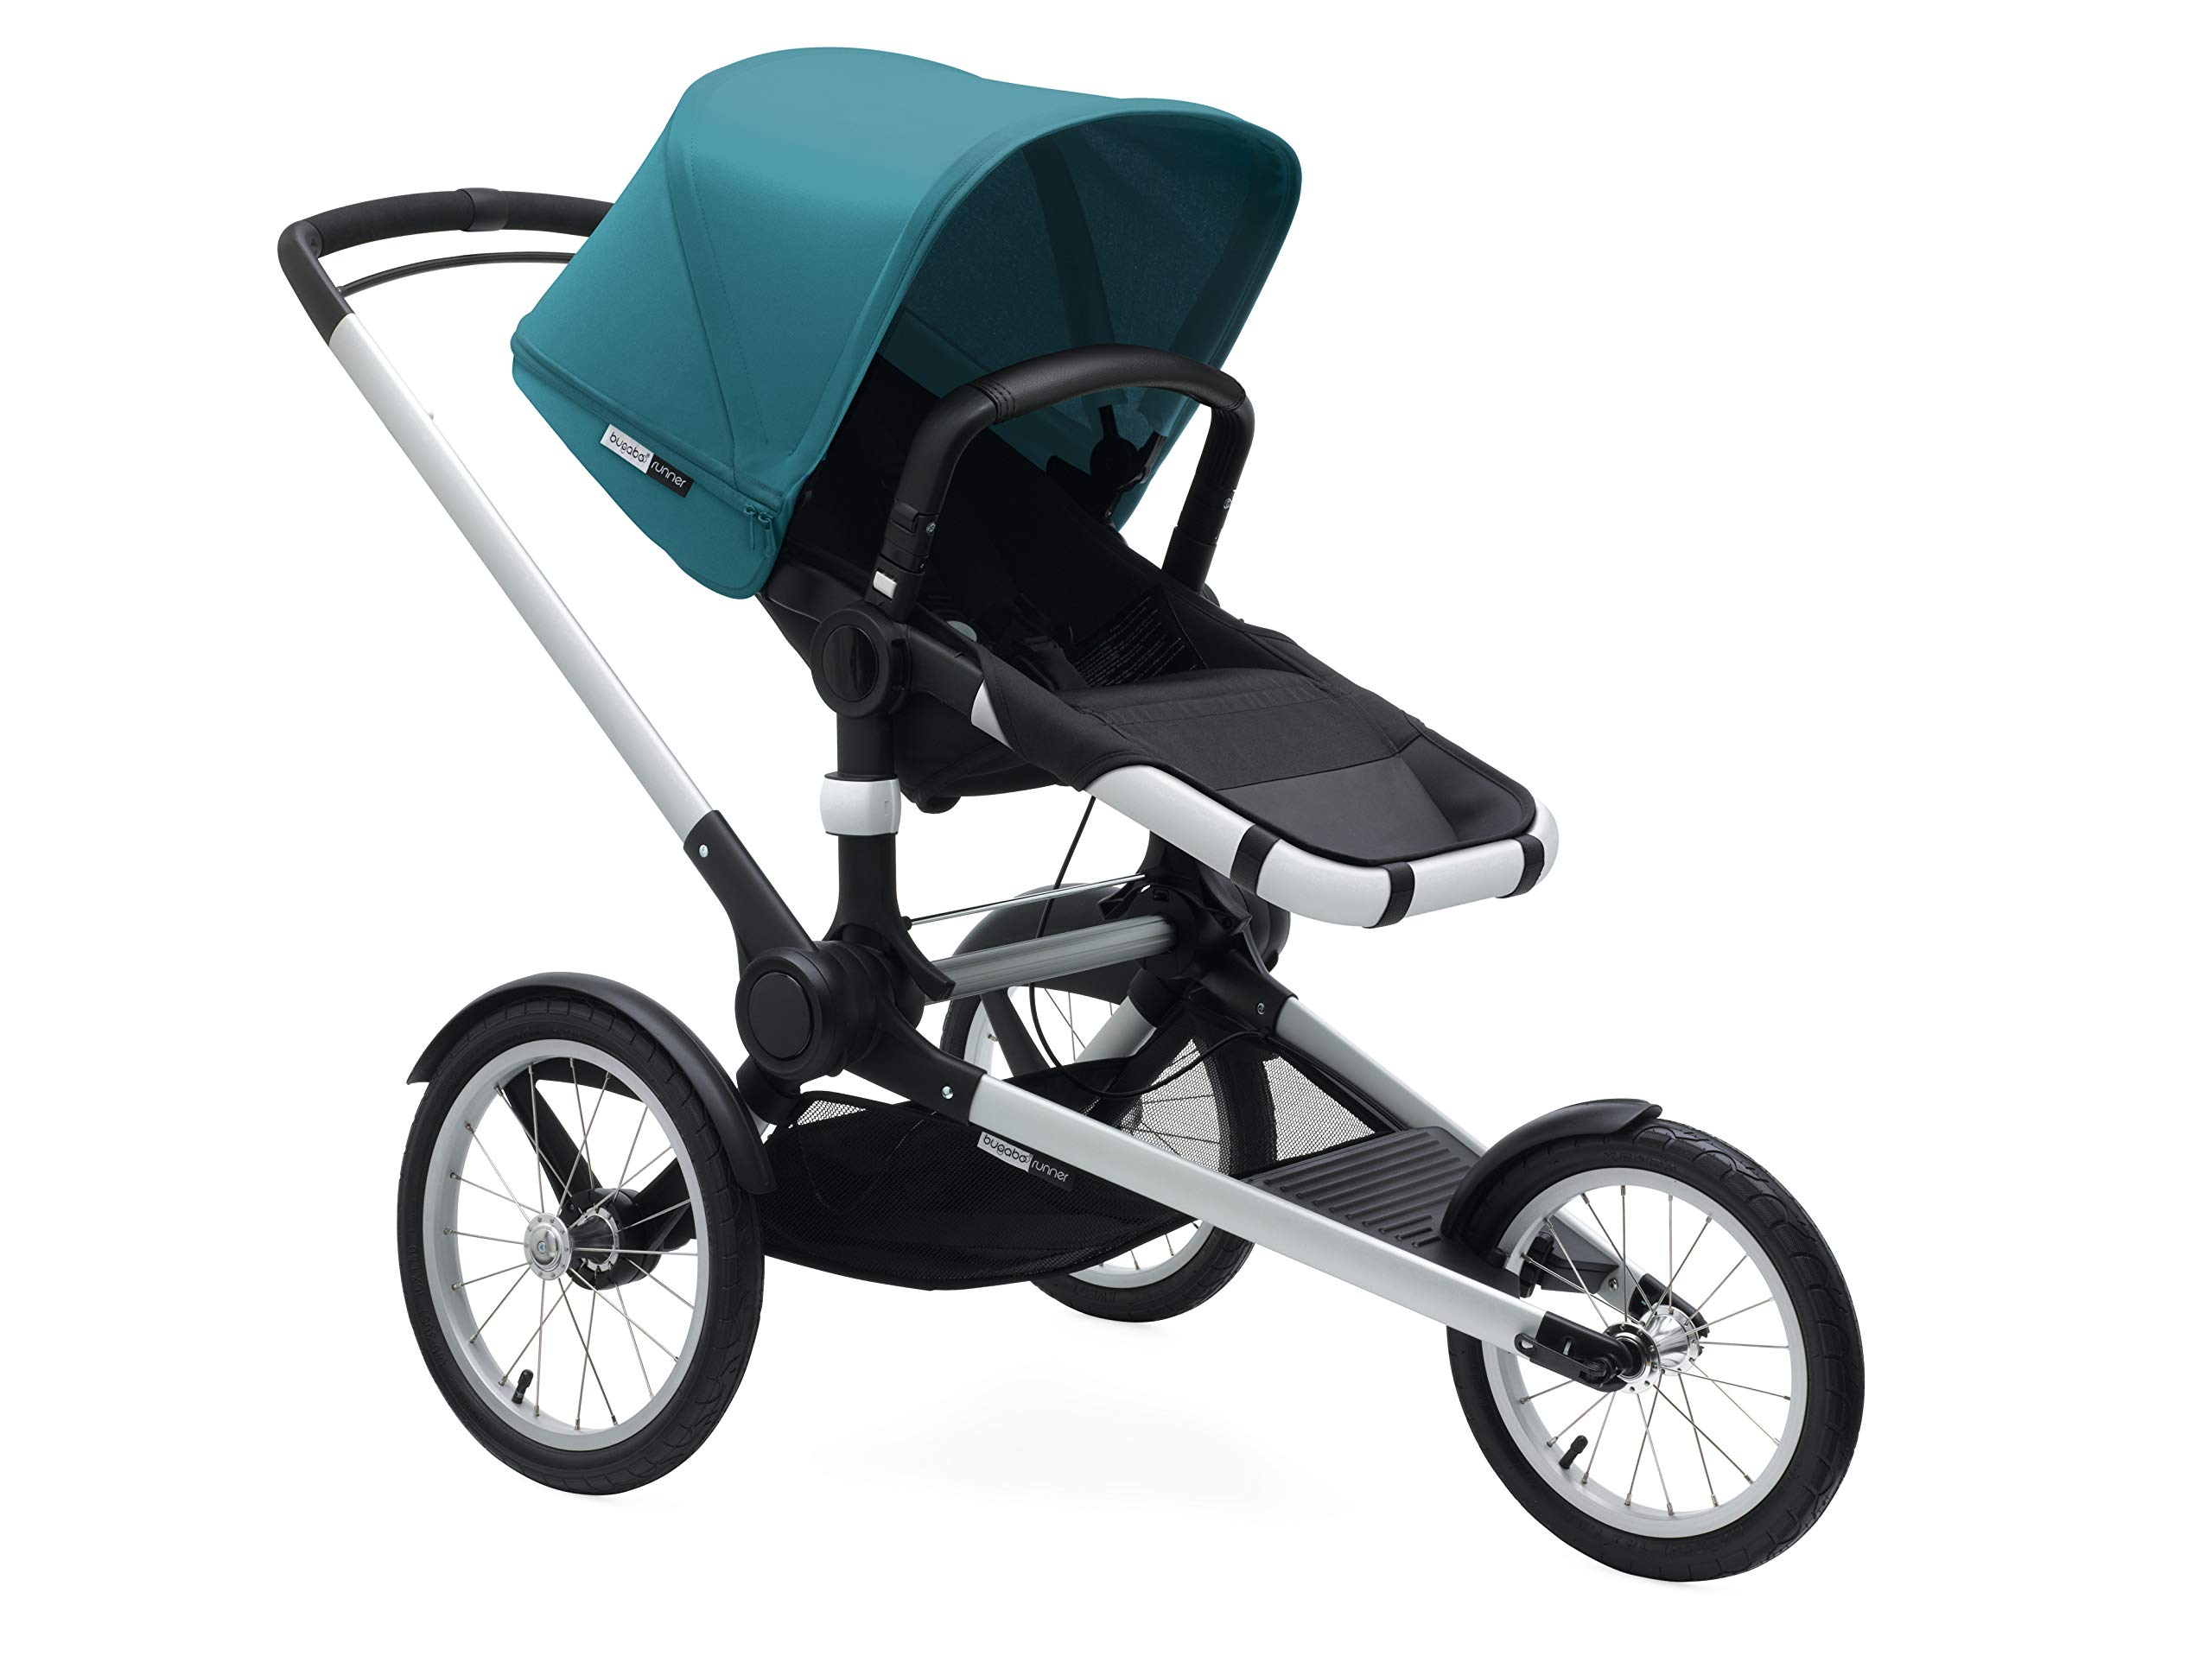 Bugaboo Runner Complete Pushchair, Black/Petrol Blue  Bugaboo